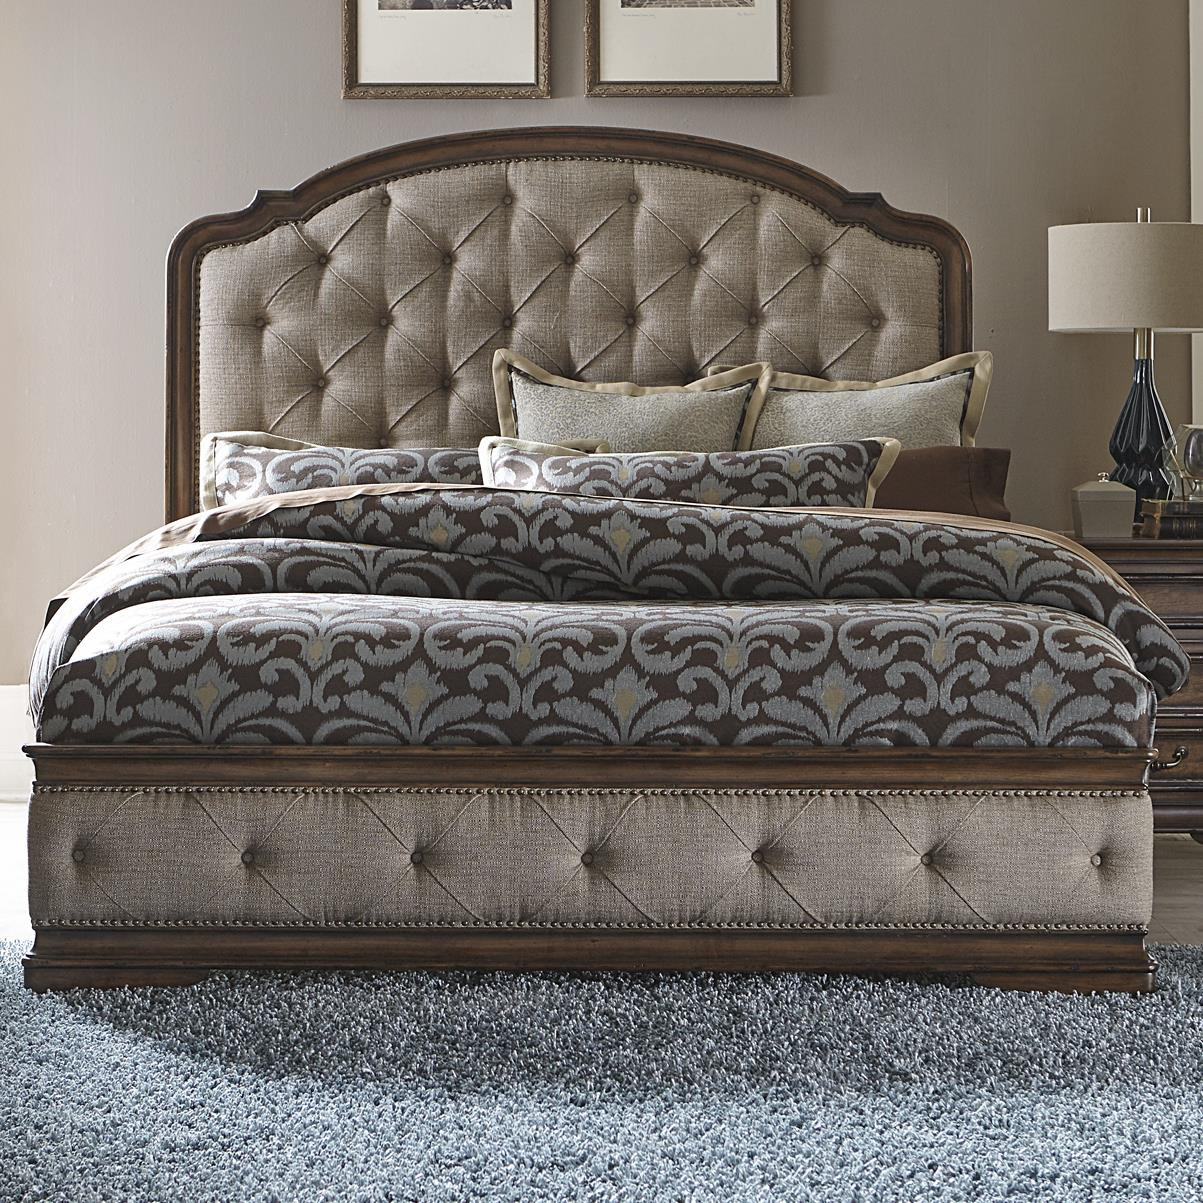 Liberty furniture amelia traditional king upholstered bed with button tufting wayside for Bedroom benches king size bed